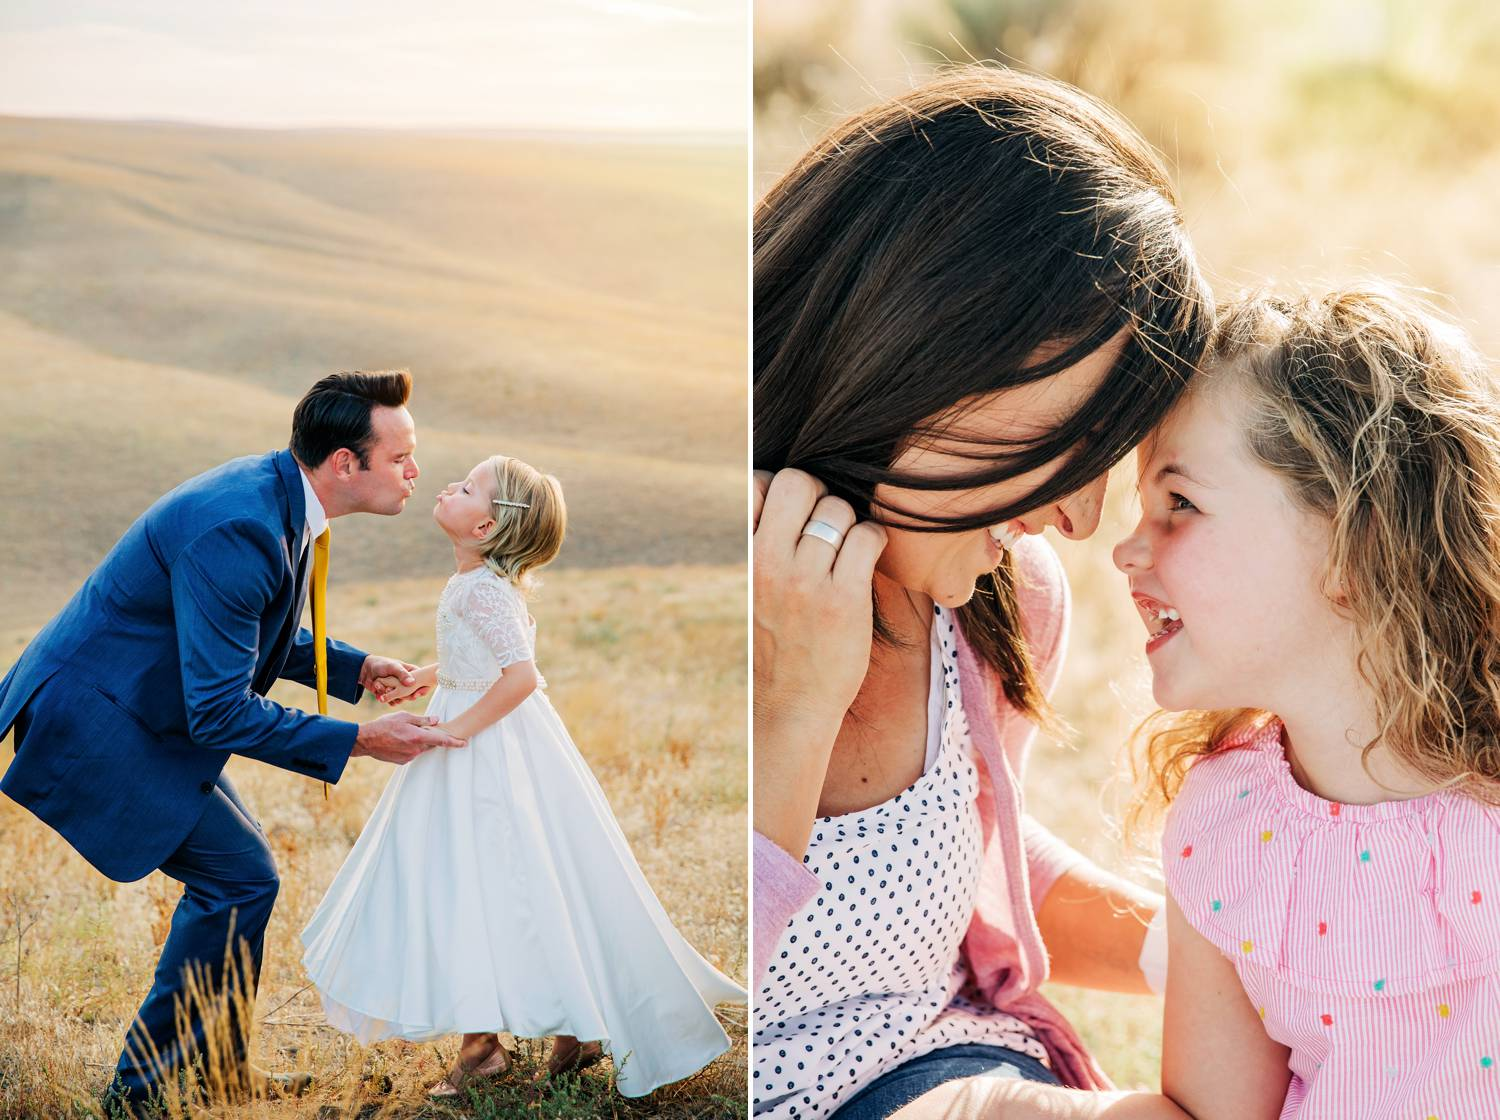 A dad plays wedding with his little girl, who is dressed as a bride. A mom bumps foreheads with her young daughter.